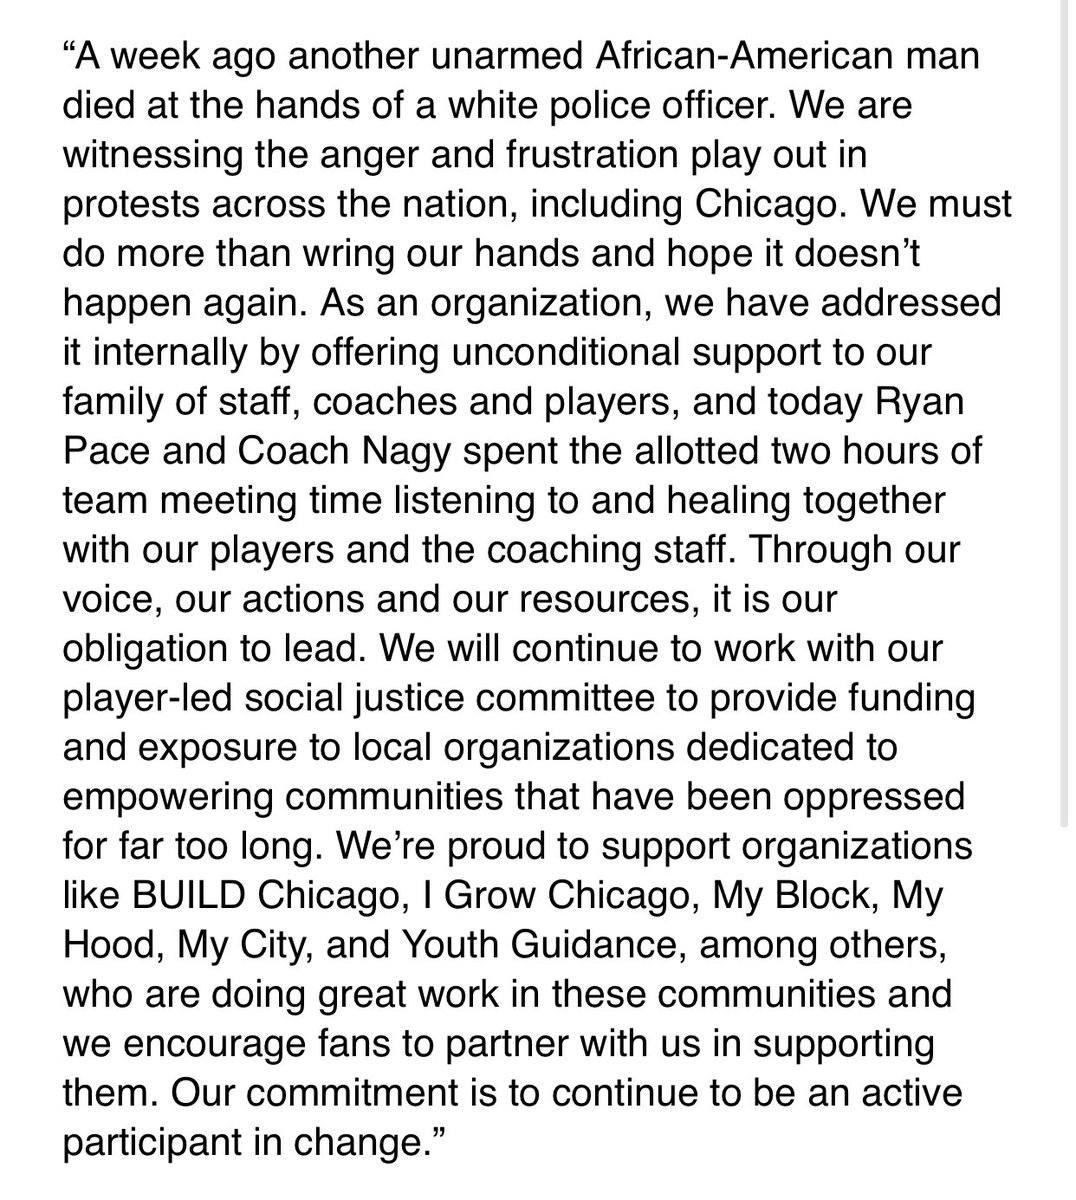 Statement from Chicago Bears' Chairman George H. McCaskey: https://t.co/wsOB0KtApk